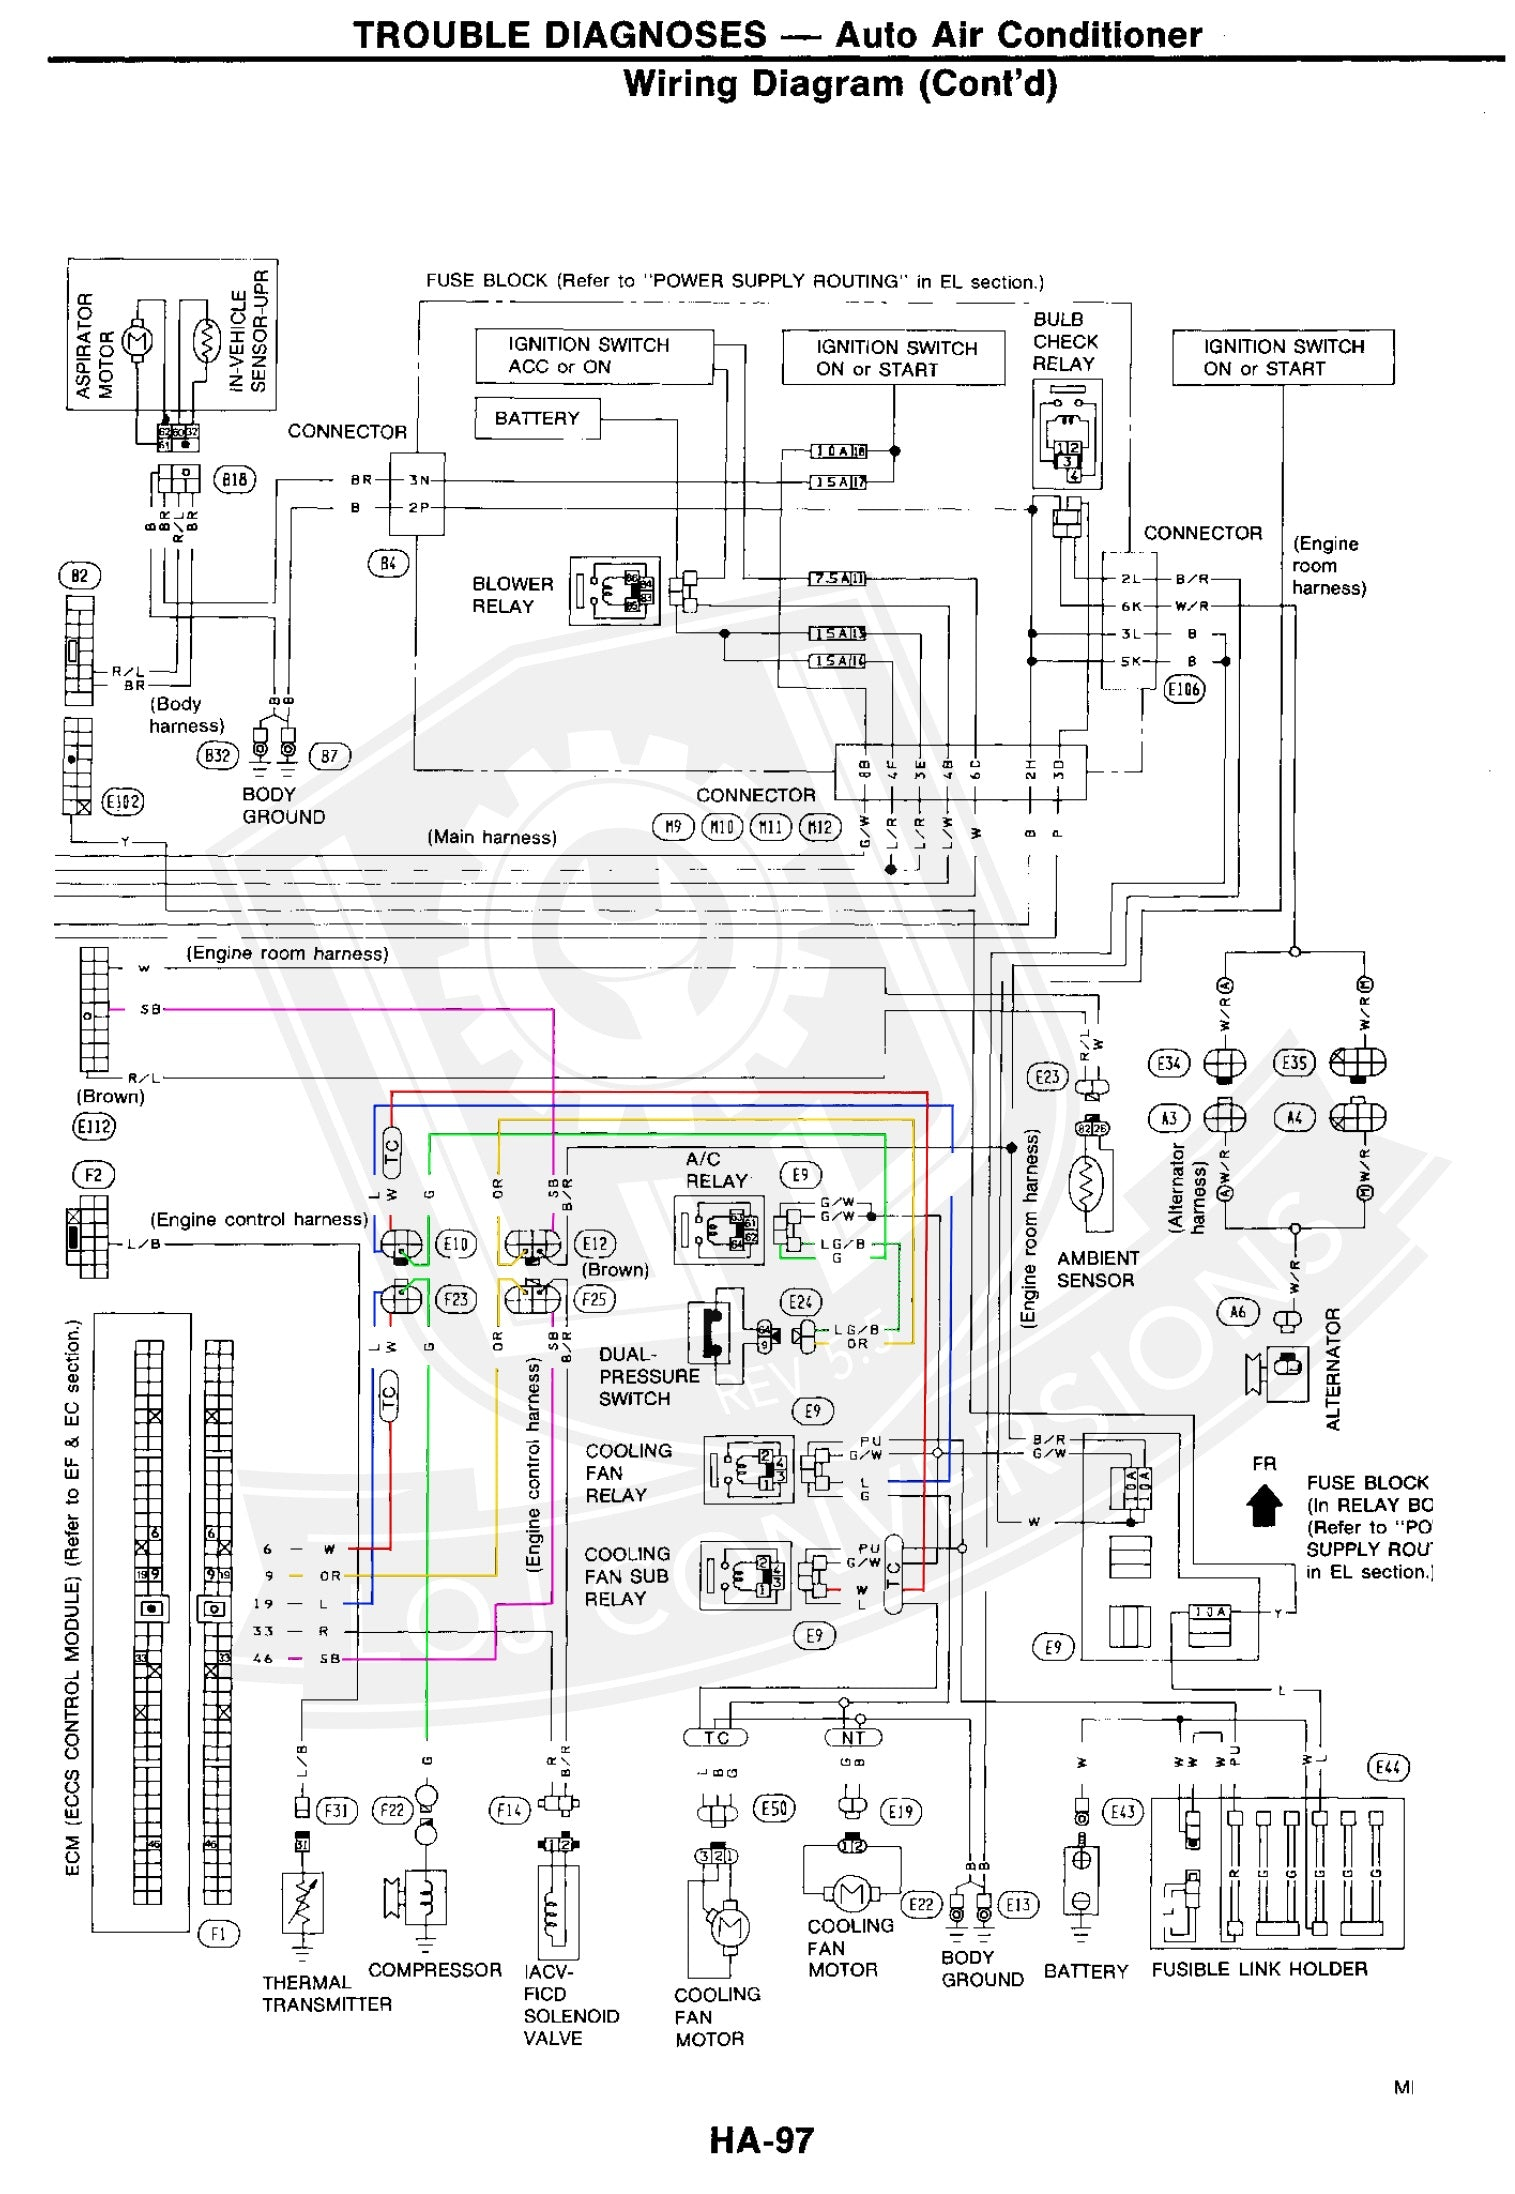 wiring the ac in a 300zx engine conversion – loj conversions nissan wiring diagram 1989 300zx tbi wiring diagram 1989 gmc suburban #12